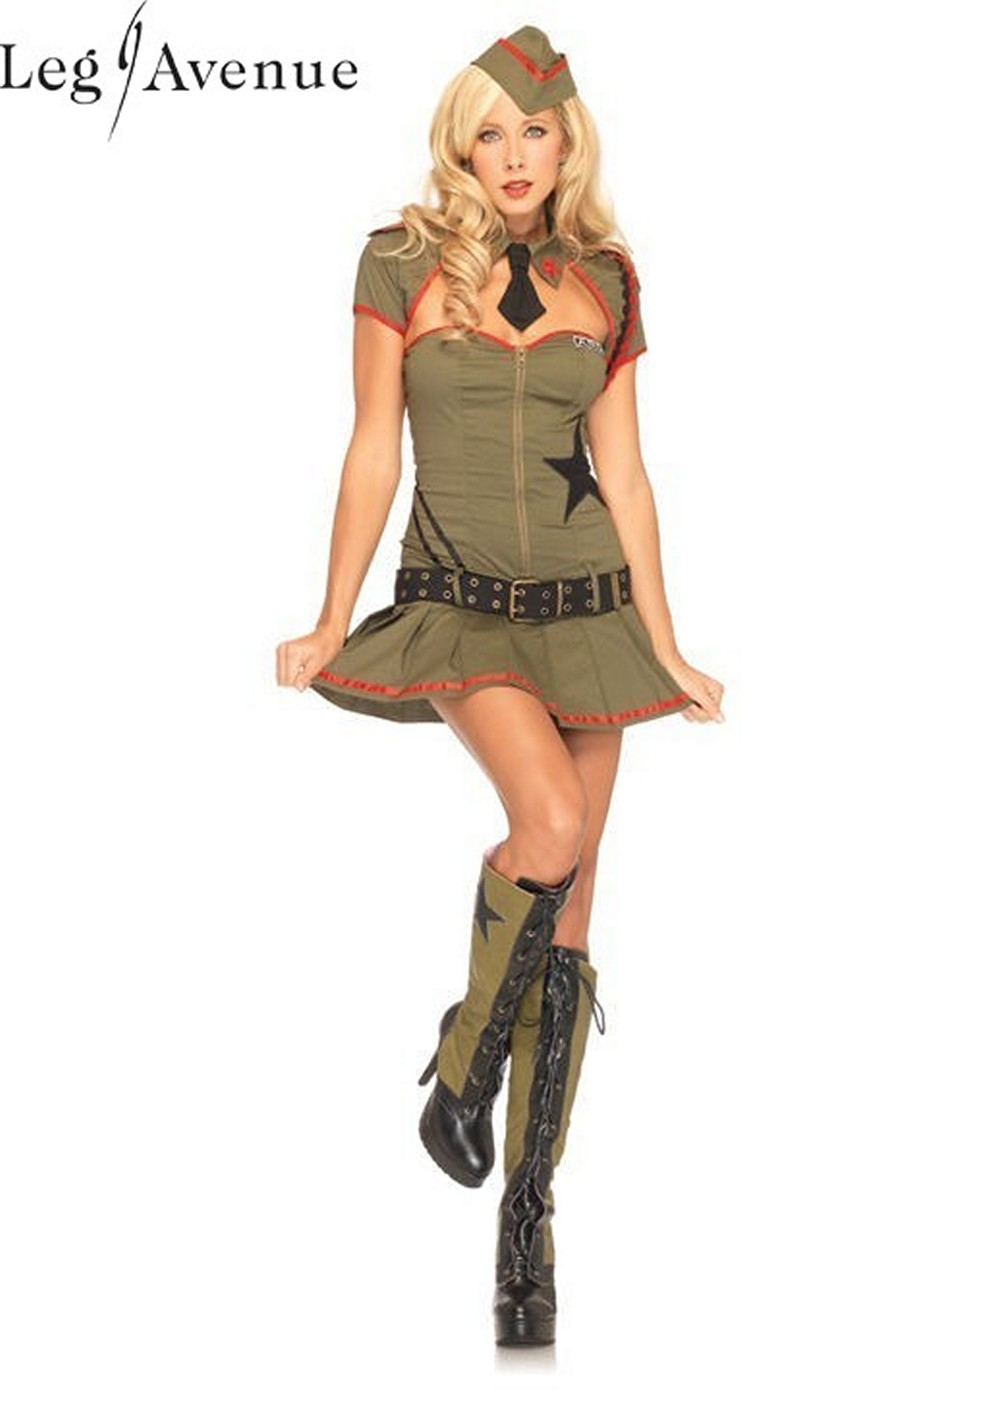 4PC LegAvenue Costume Private Pin Up Zipper Front Dress w, Clear Straps, Shrug w, Attached Tie, Belt, & Hat 83696